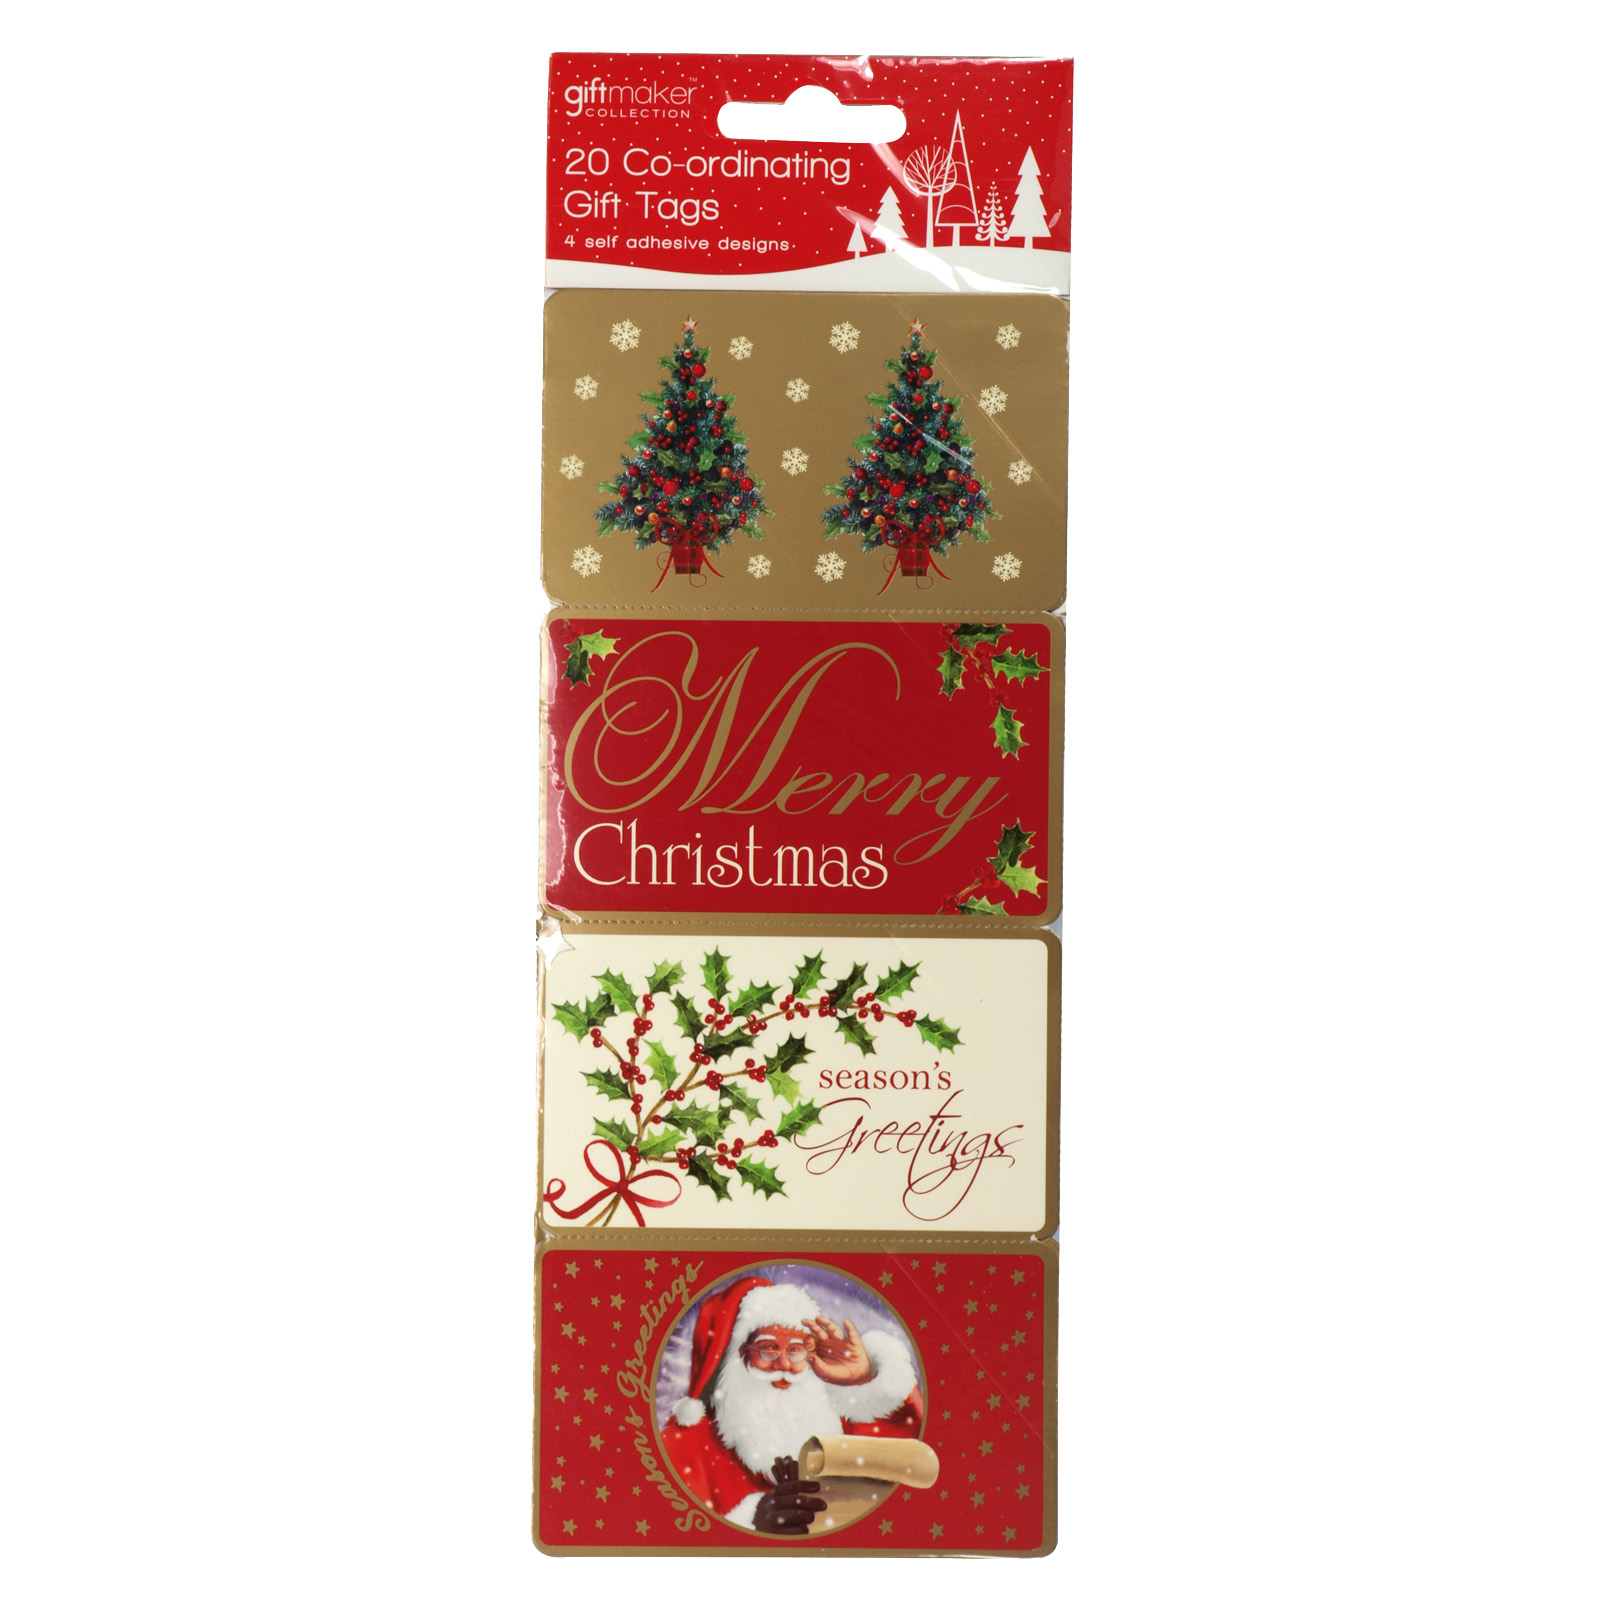 X-MAS GIFT TAGS SELF ADHESIVE 20 ELEGANT TRADITIONS X25